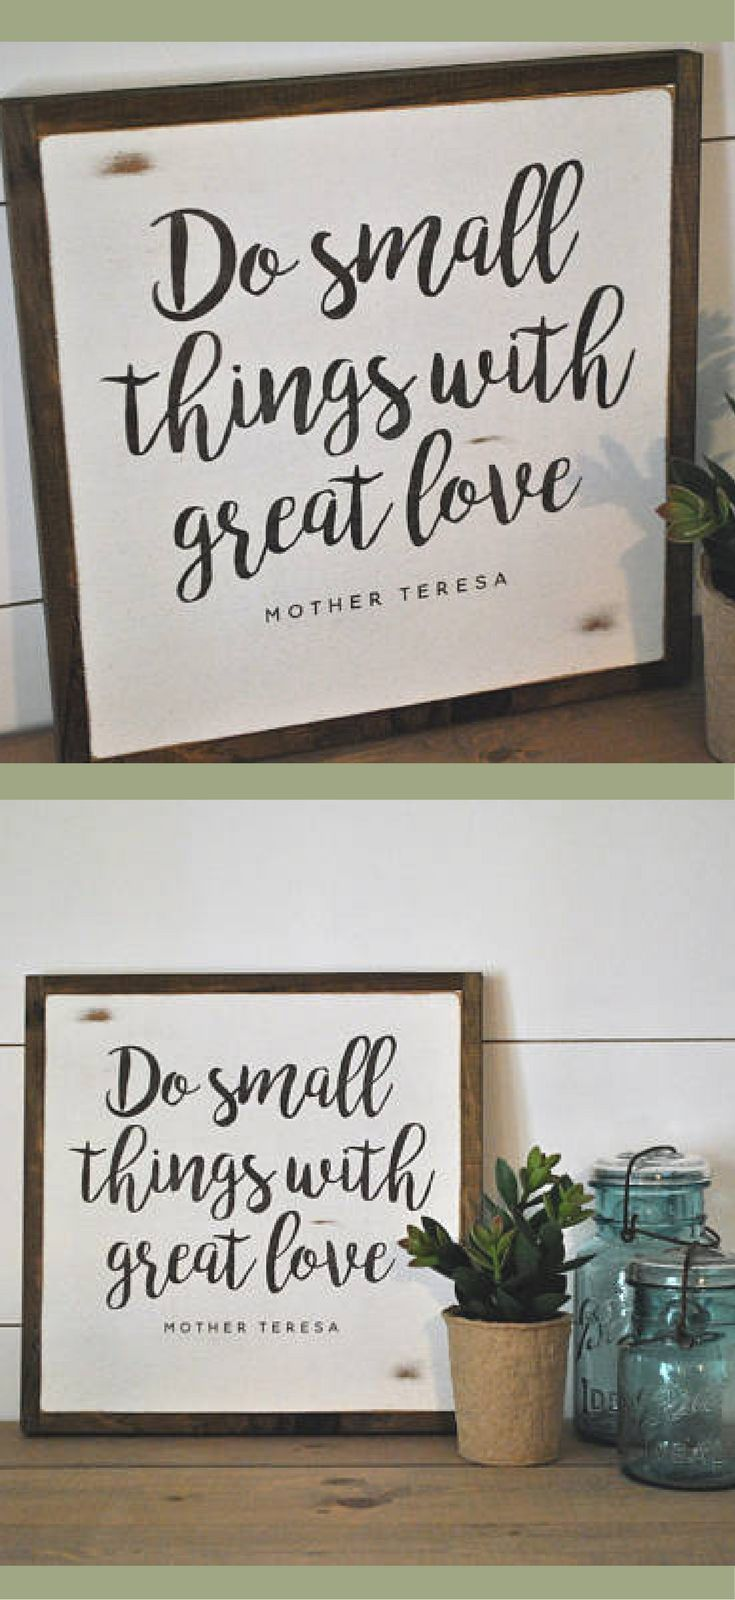 Mother Teresa Quote Art Do Small Things With Great Love Sign Farmhouse Wall Art Farmhouse Decor Rus With Images Shabby Chic Wall Art Farmhouse Wall Art Chic Wall Art